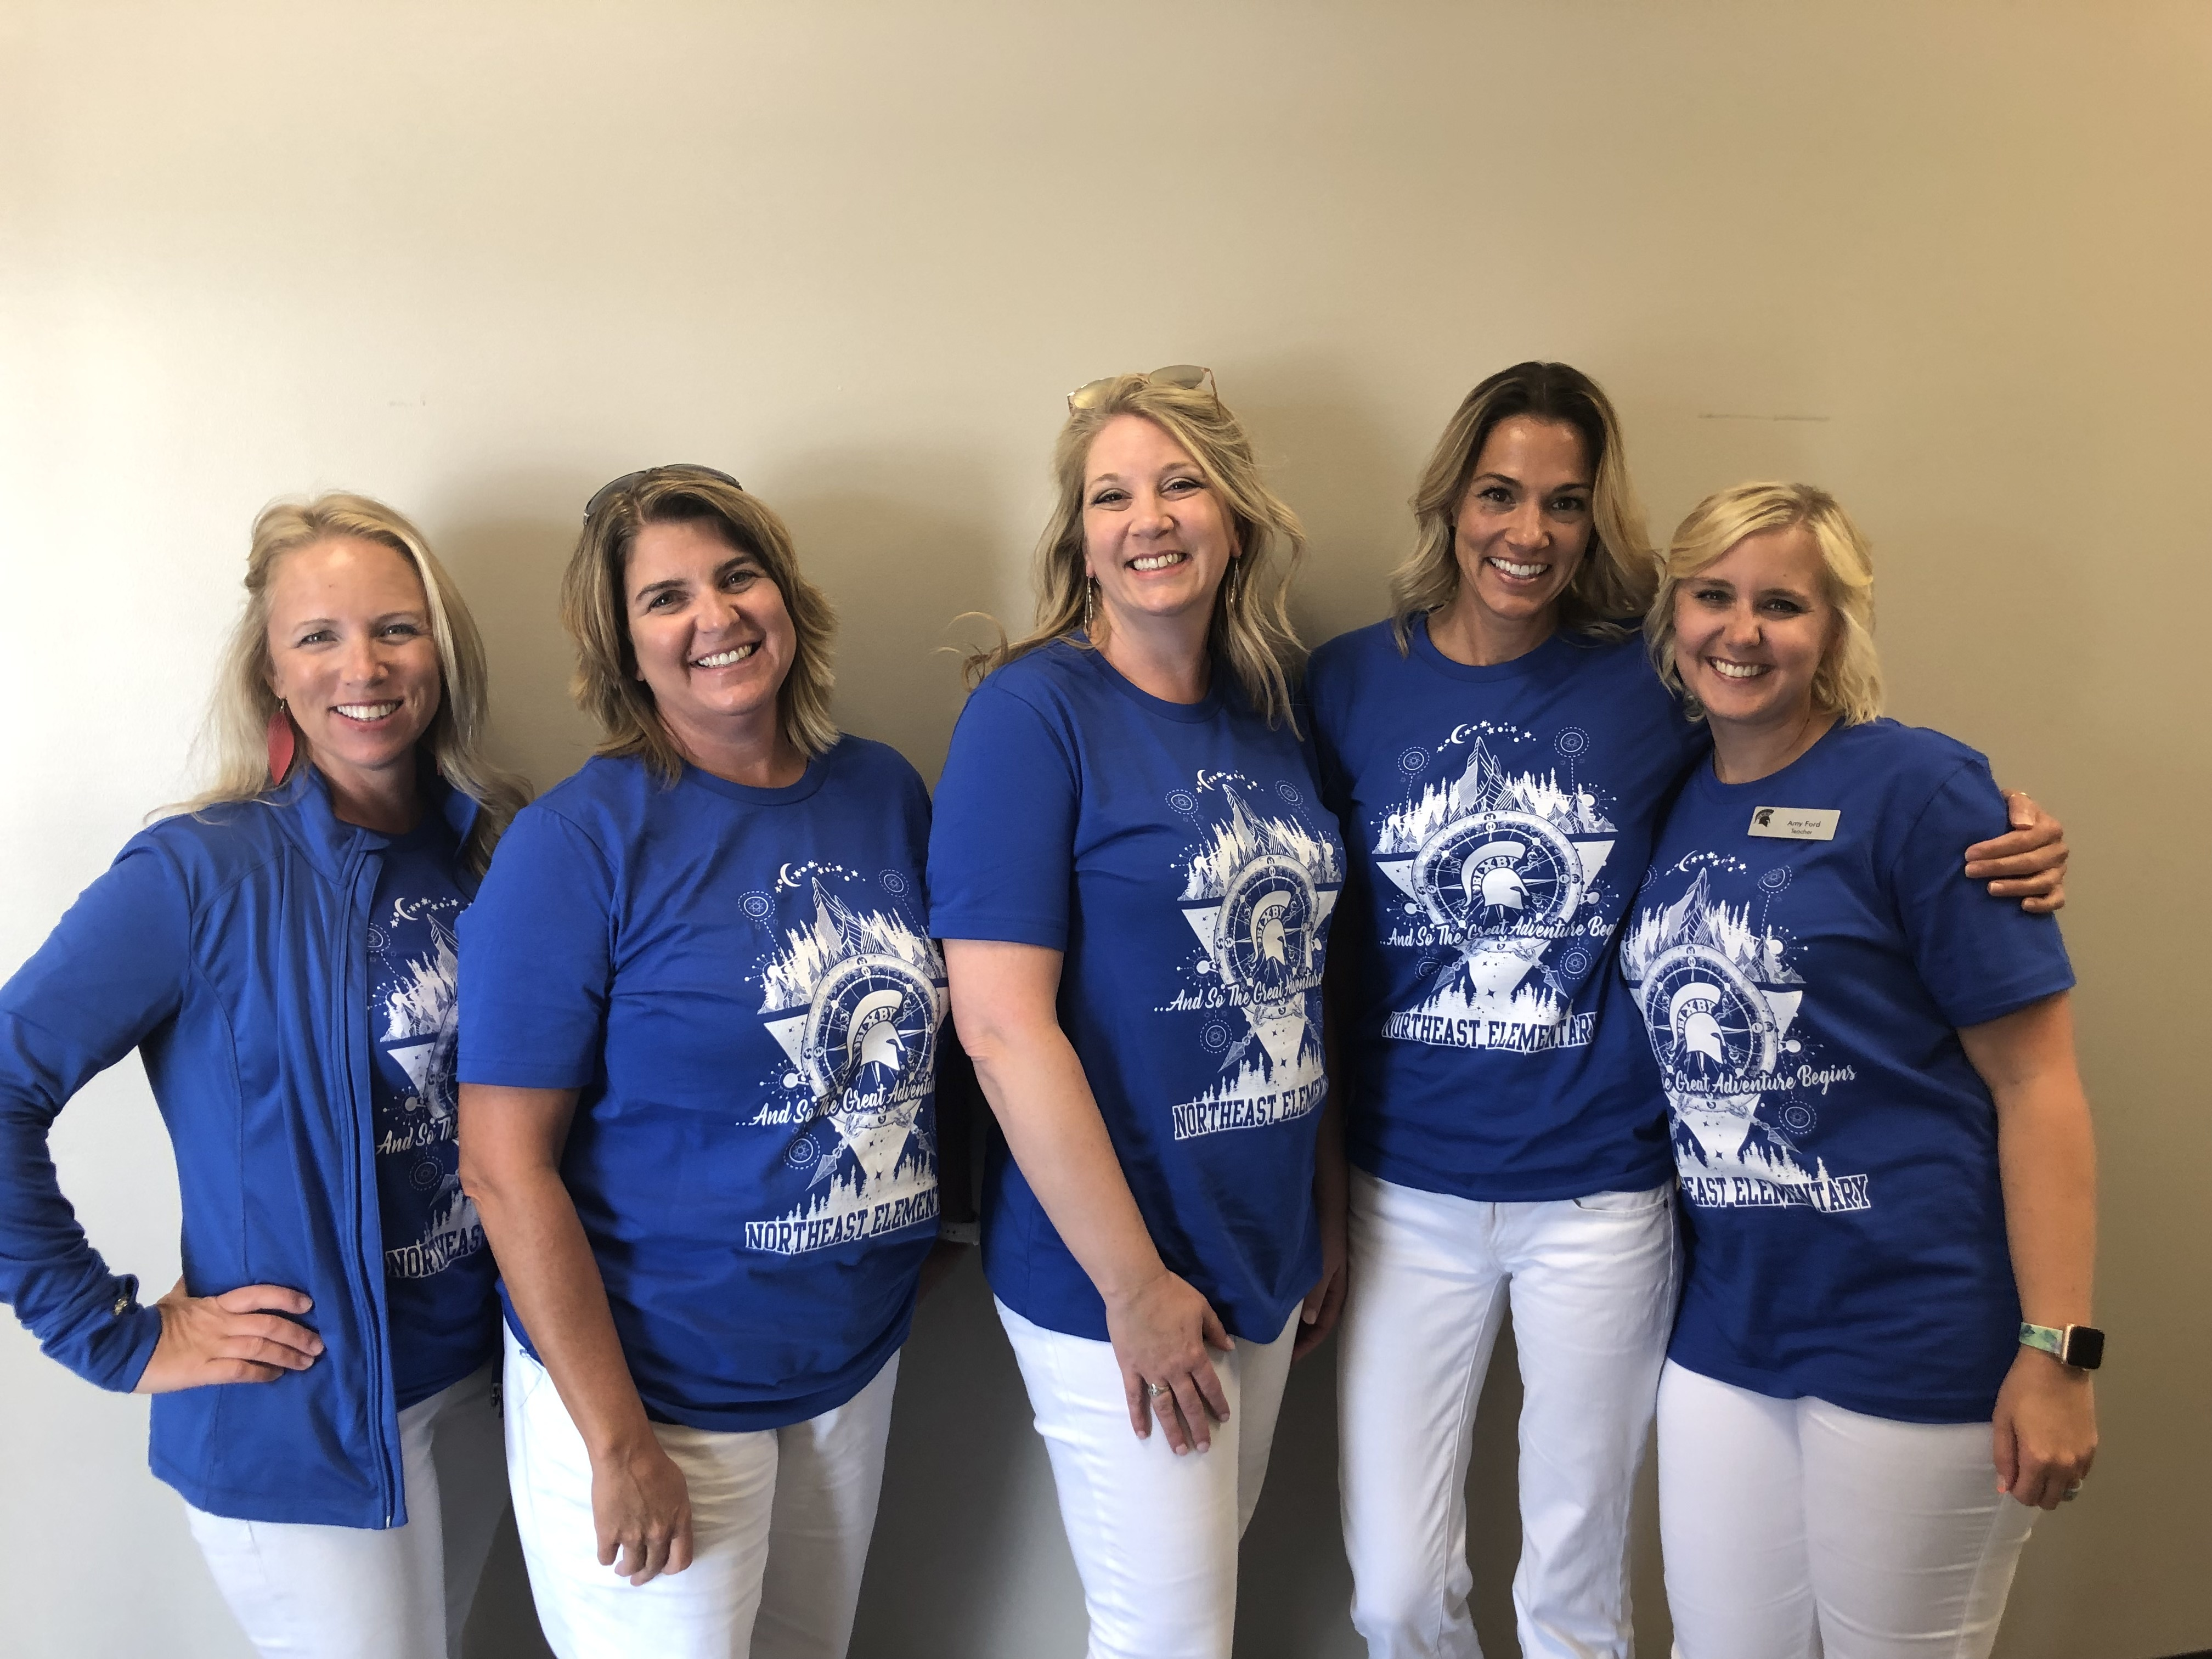 Mrs. Cook, Mrs. Dout, Mrs. Griffin, Ms. Karalis, and Mrs. Ford